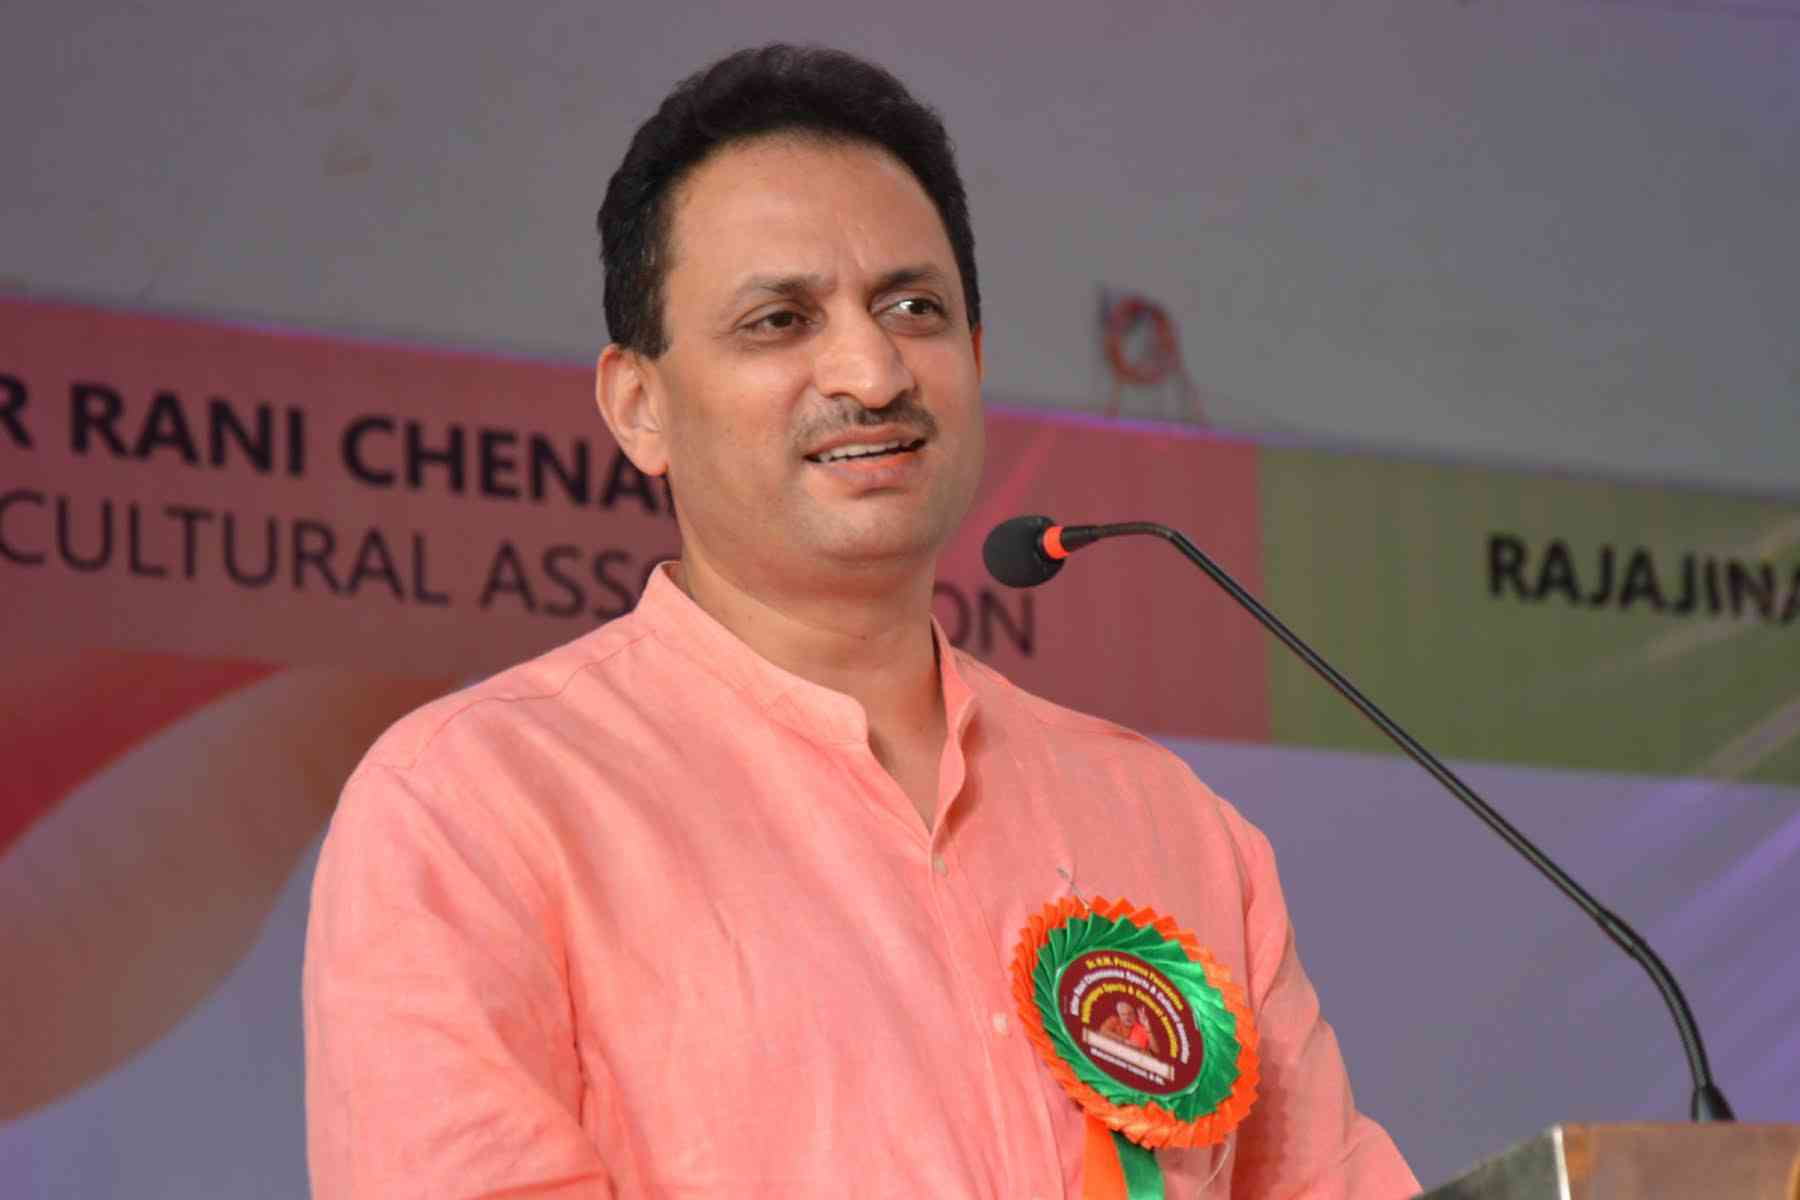 Anantkumar Hegde is a minister under Narendra Modi. Photo via Facebook